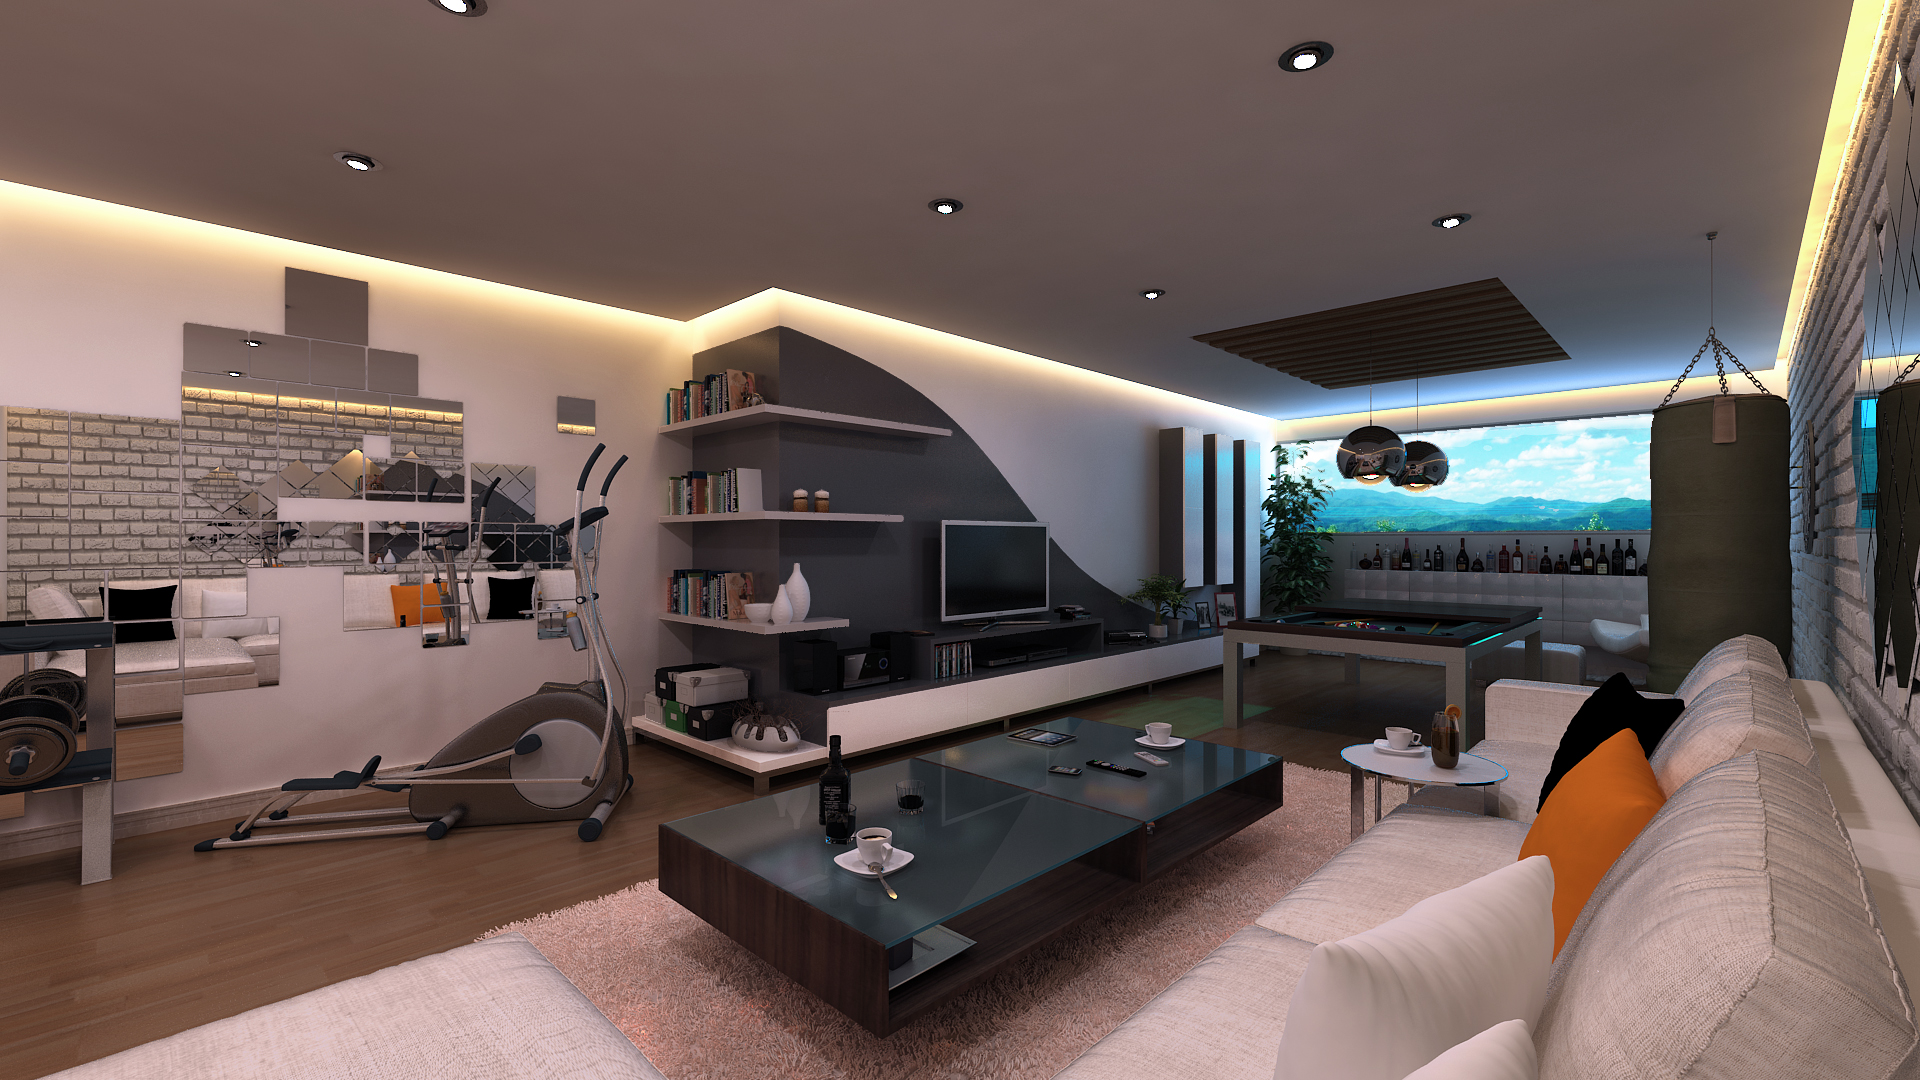 Excellent Bachelor Pad Ideas With Modern Taste: Elftug Kusadasi Games Room